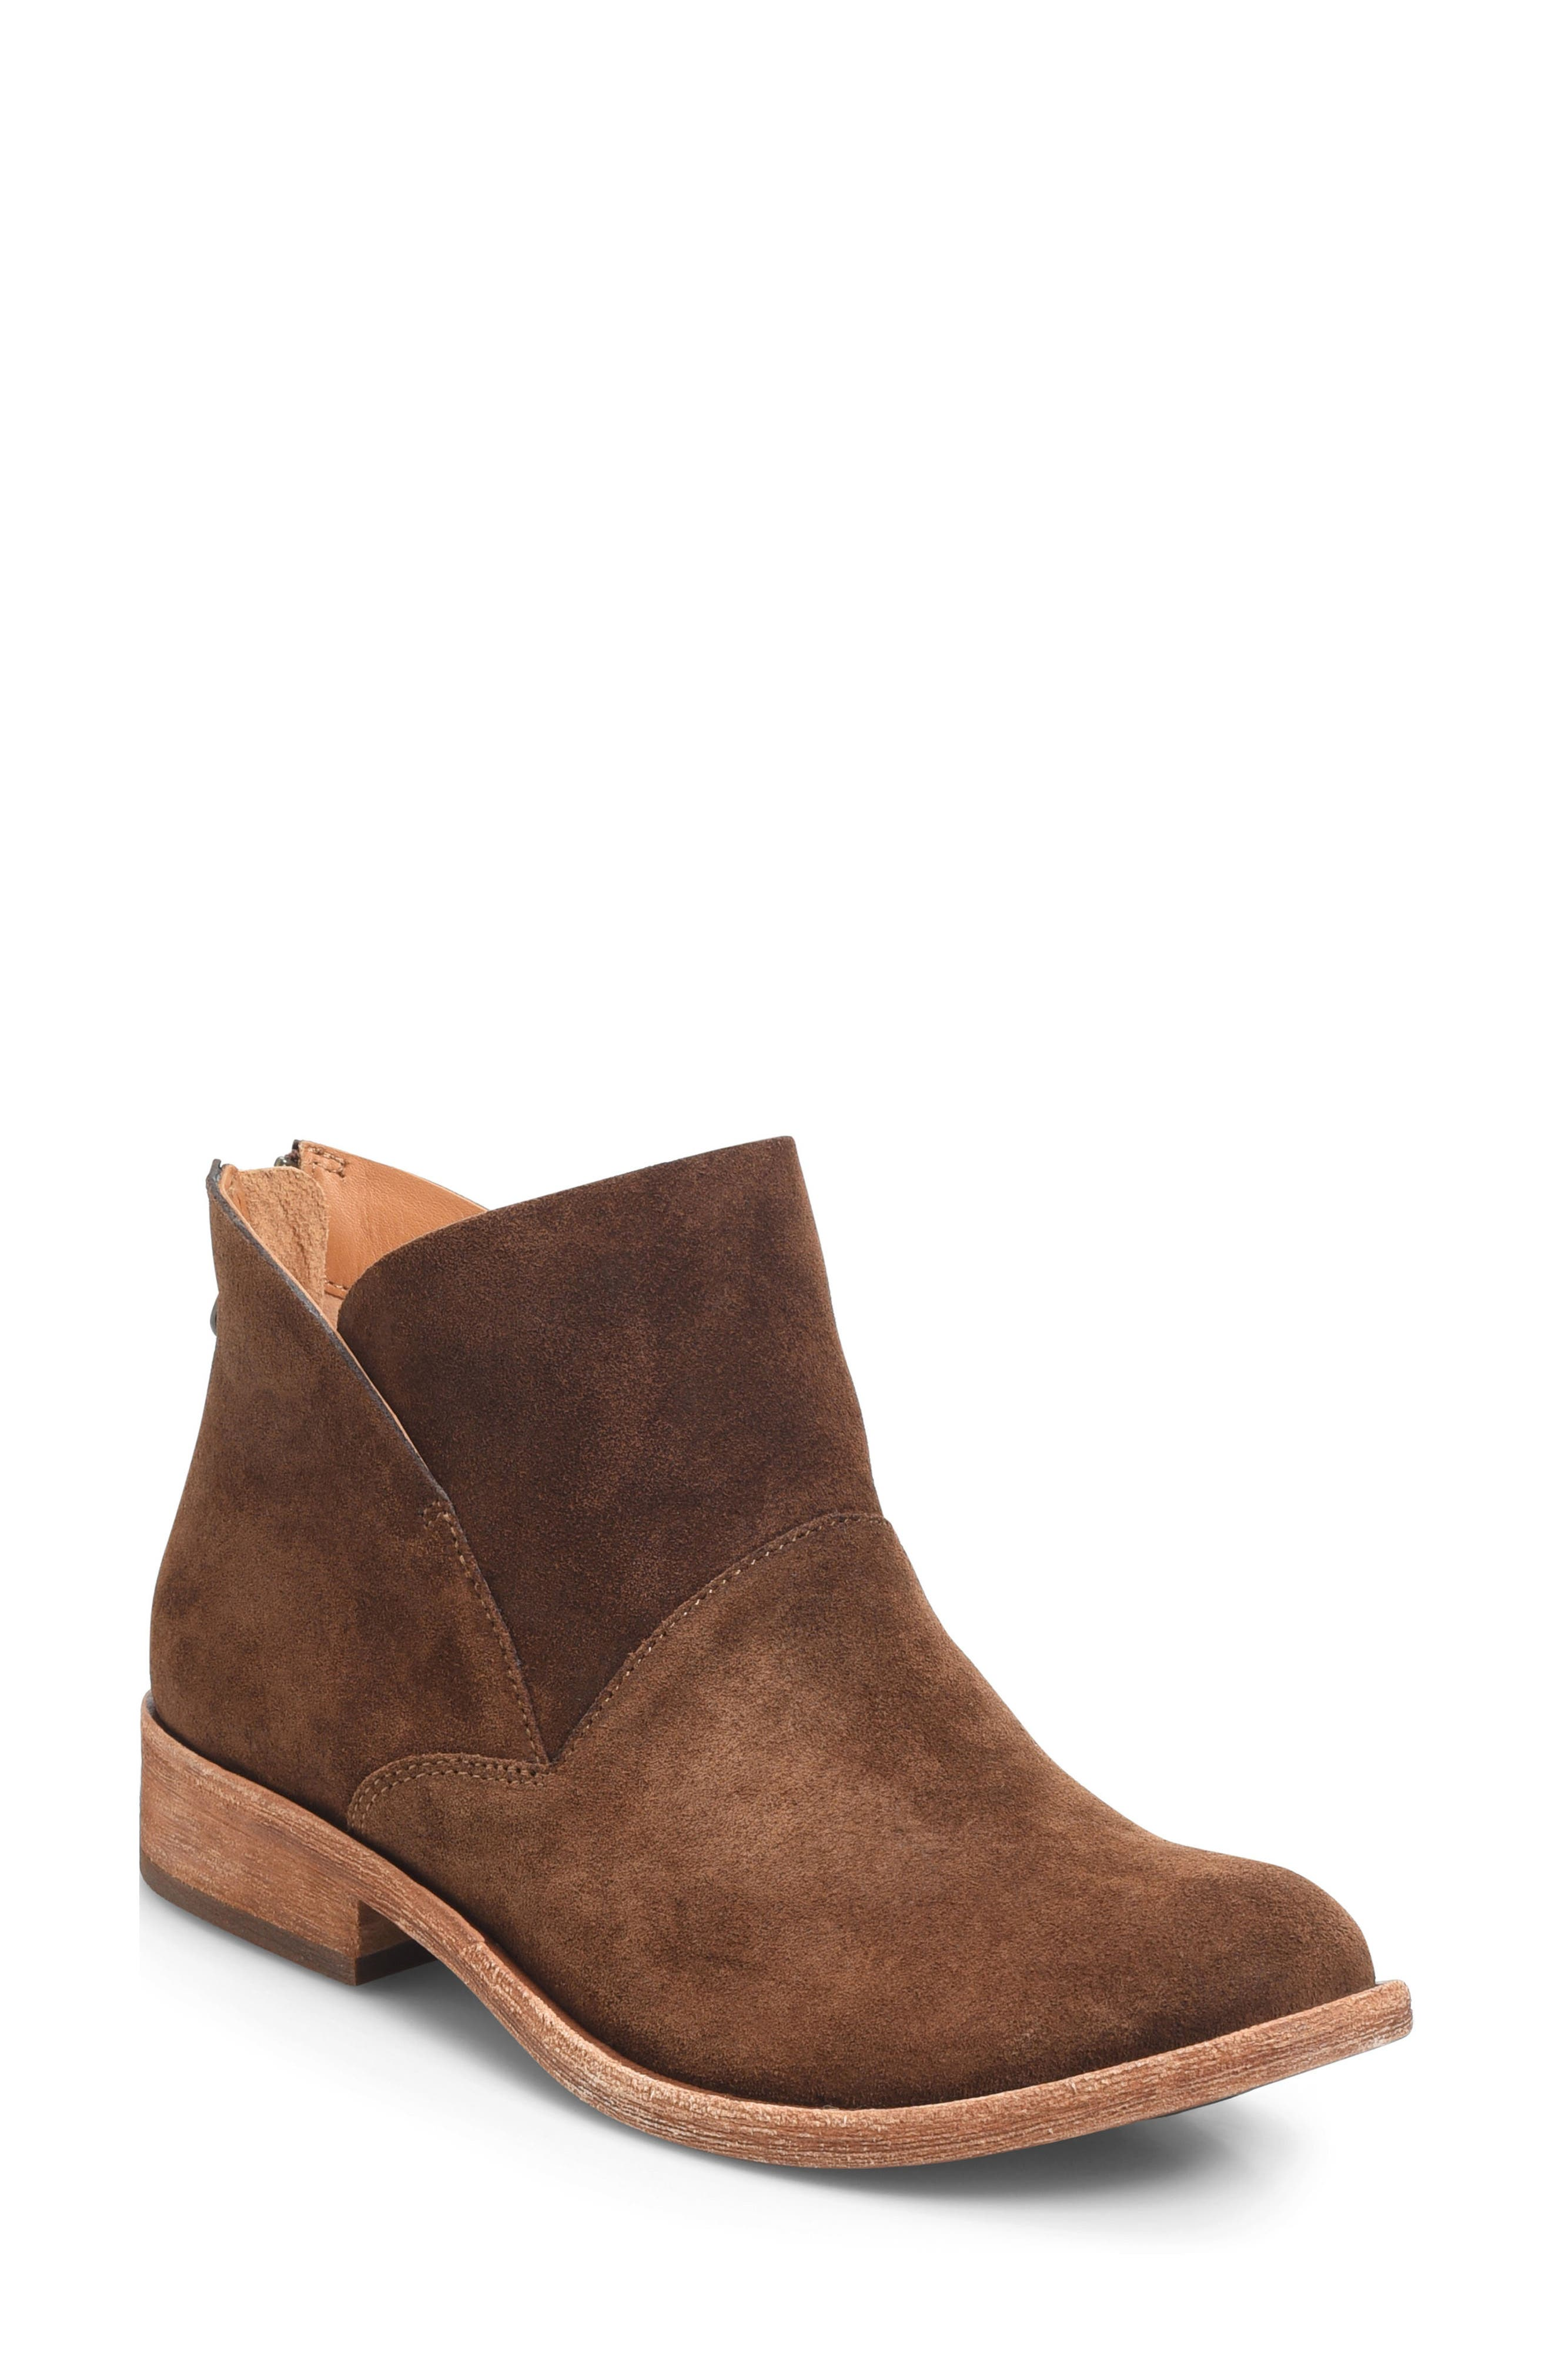 Ryder Ankle Boot,                         Main,                         color, Rust Suede